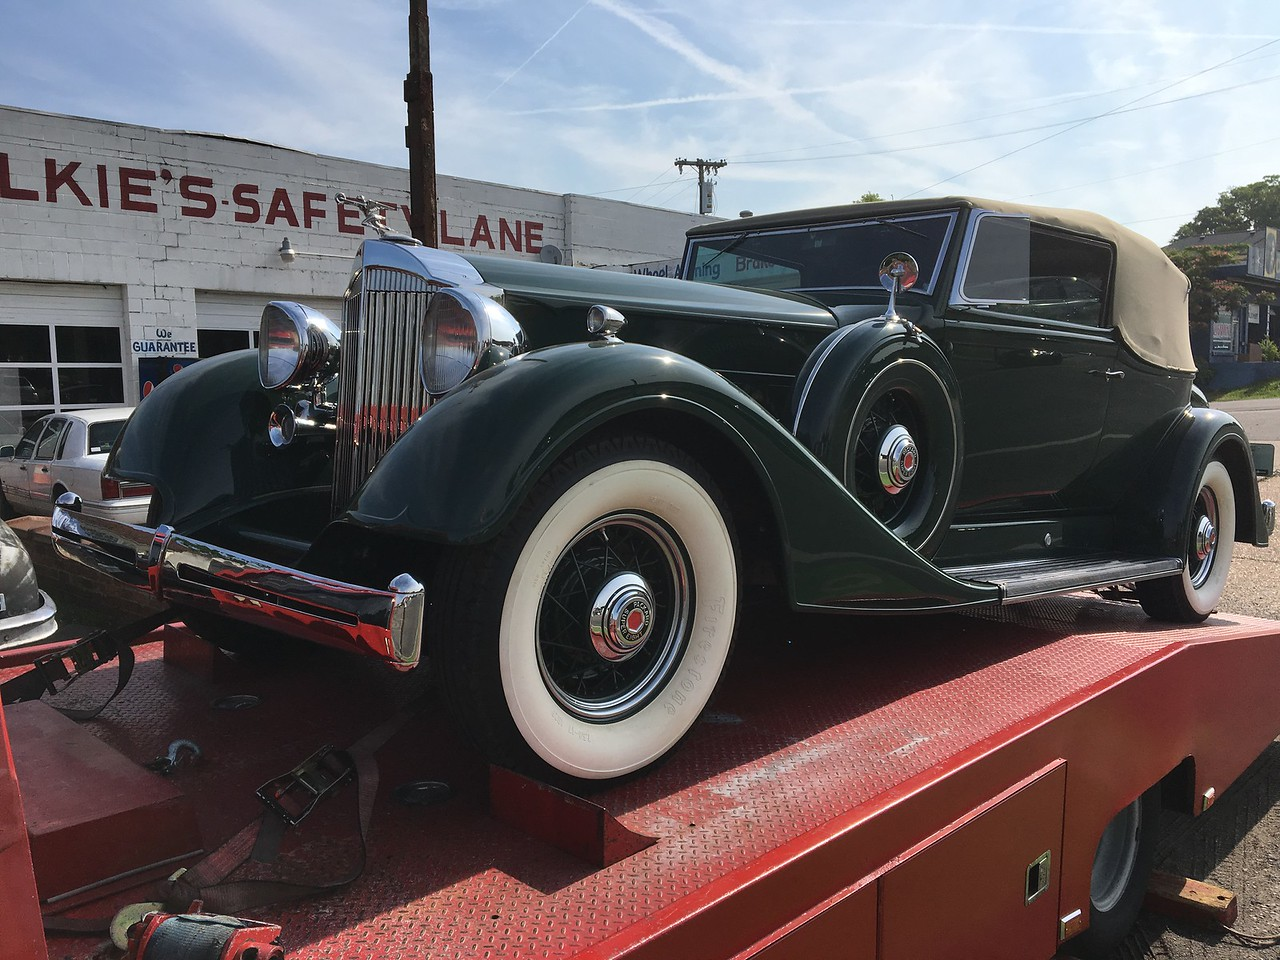 1934 Packard Super Eight Victoria Convertible by Dietrich (Nashville, Tennessee to Columbia, Tennessee)